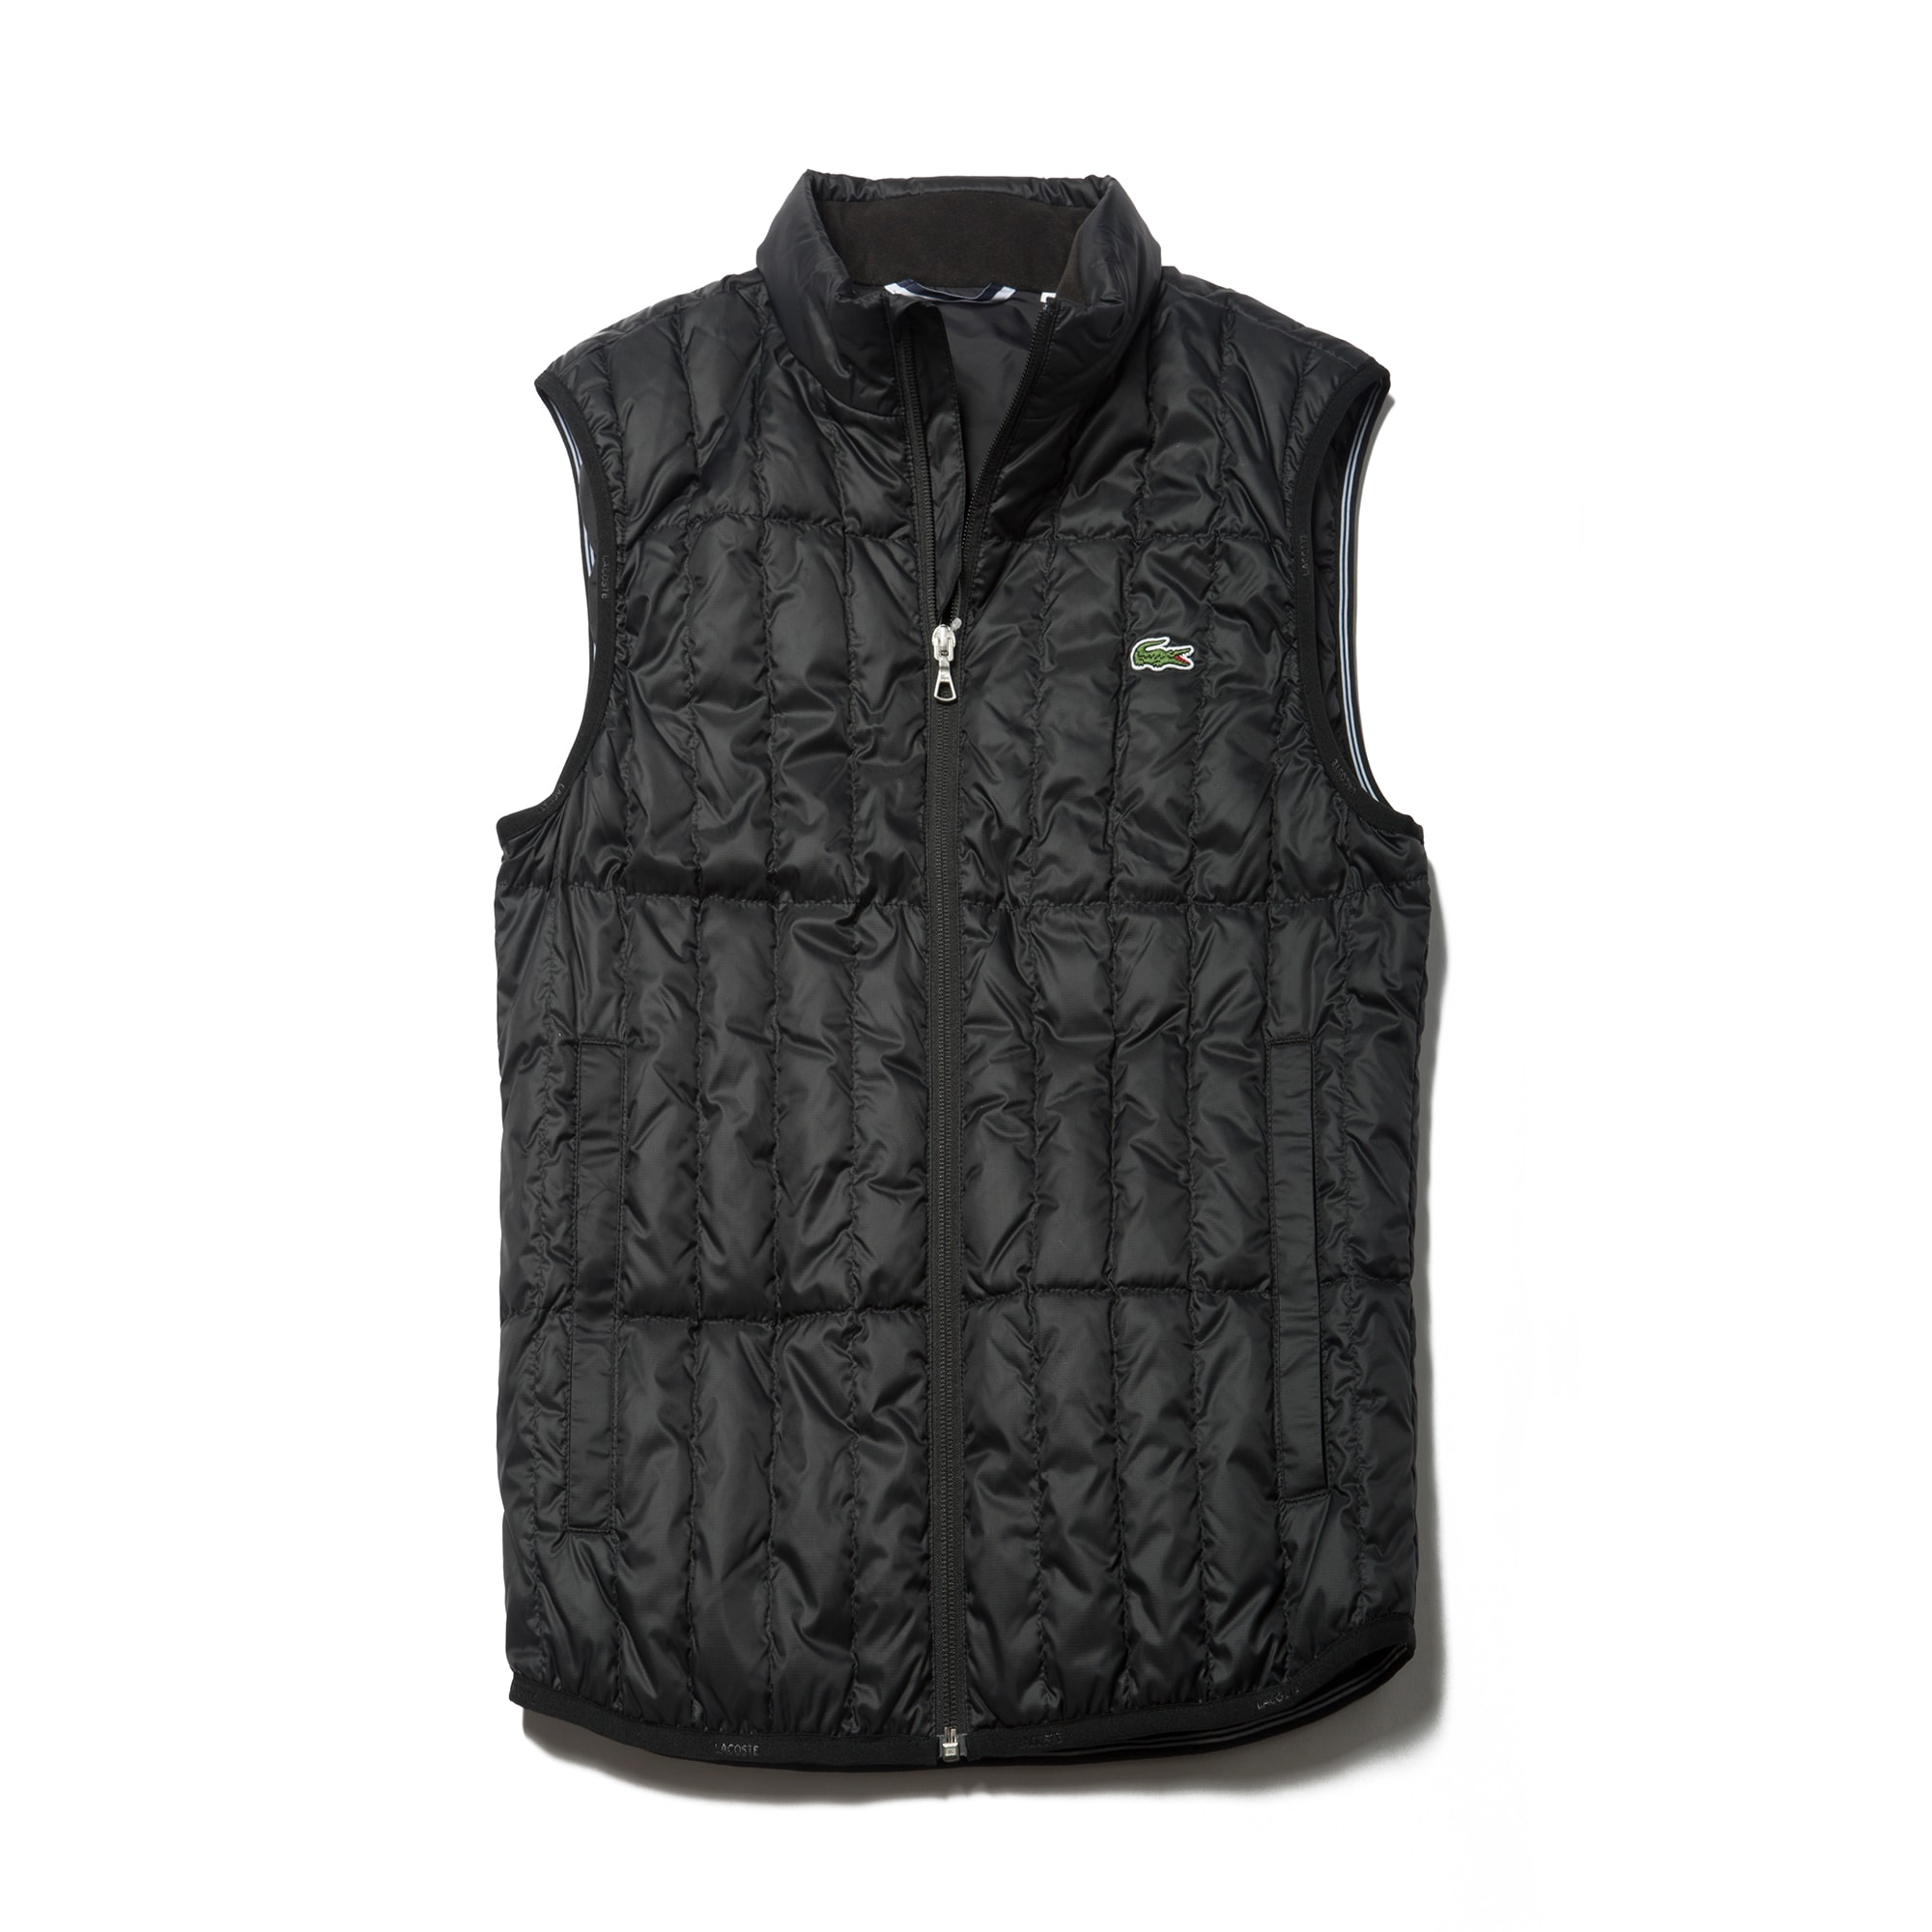 라코스테 Lacoste Mens SPORT Golf Water-resistant Quilted Vest,ocean/navy blue